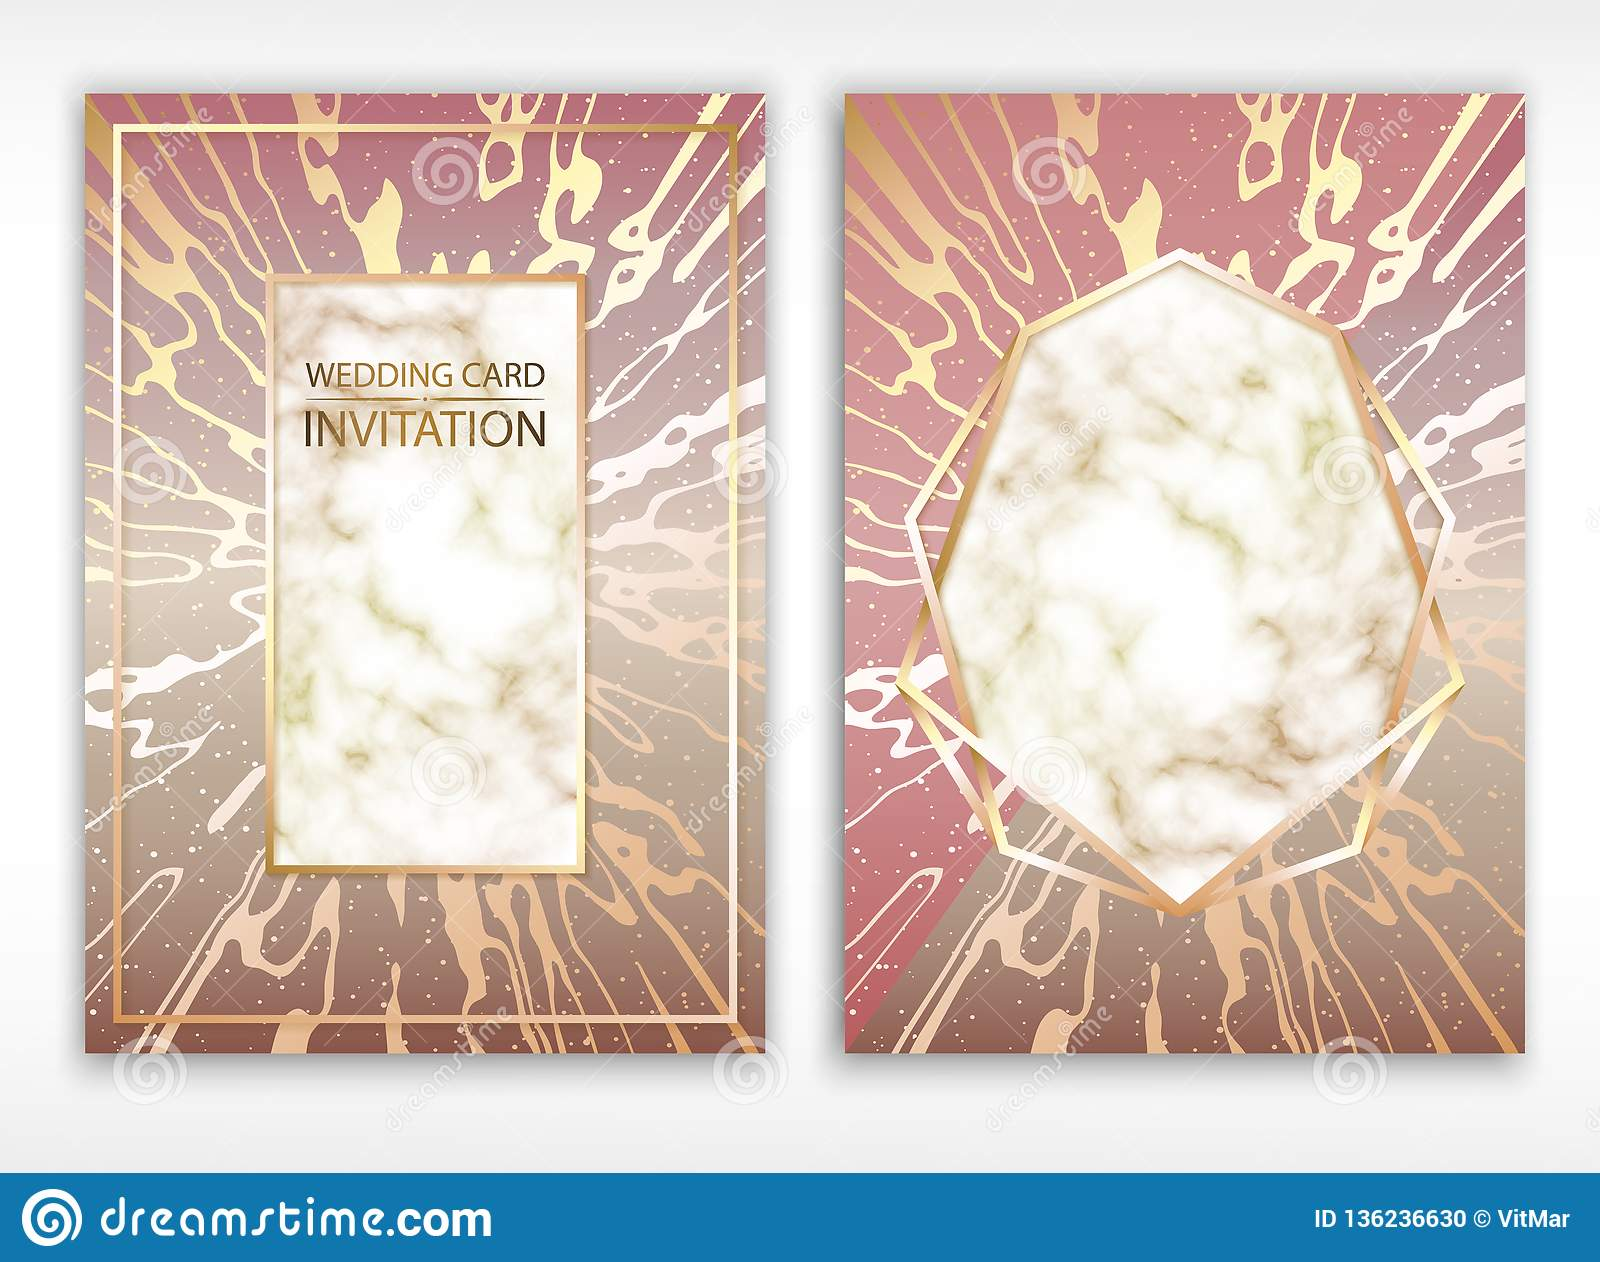 Vector. Background of rose gold. Wedding card. Detailed texture of marble. Grainy surface. Golden border.